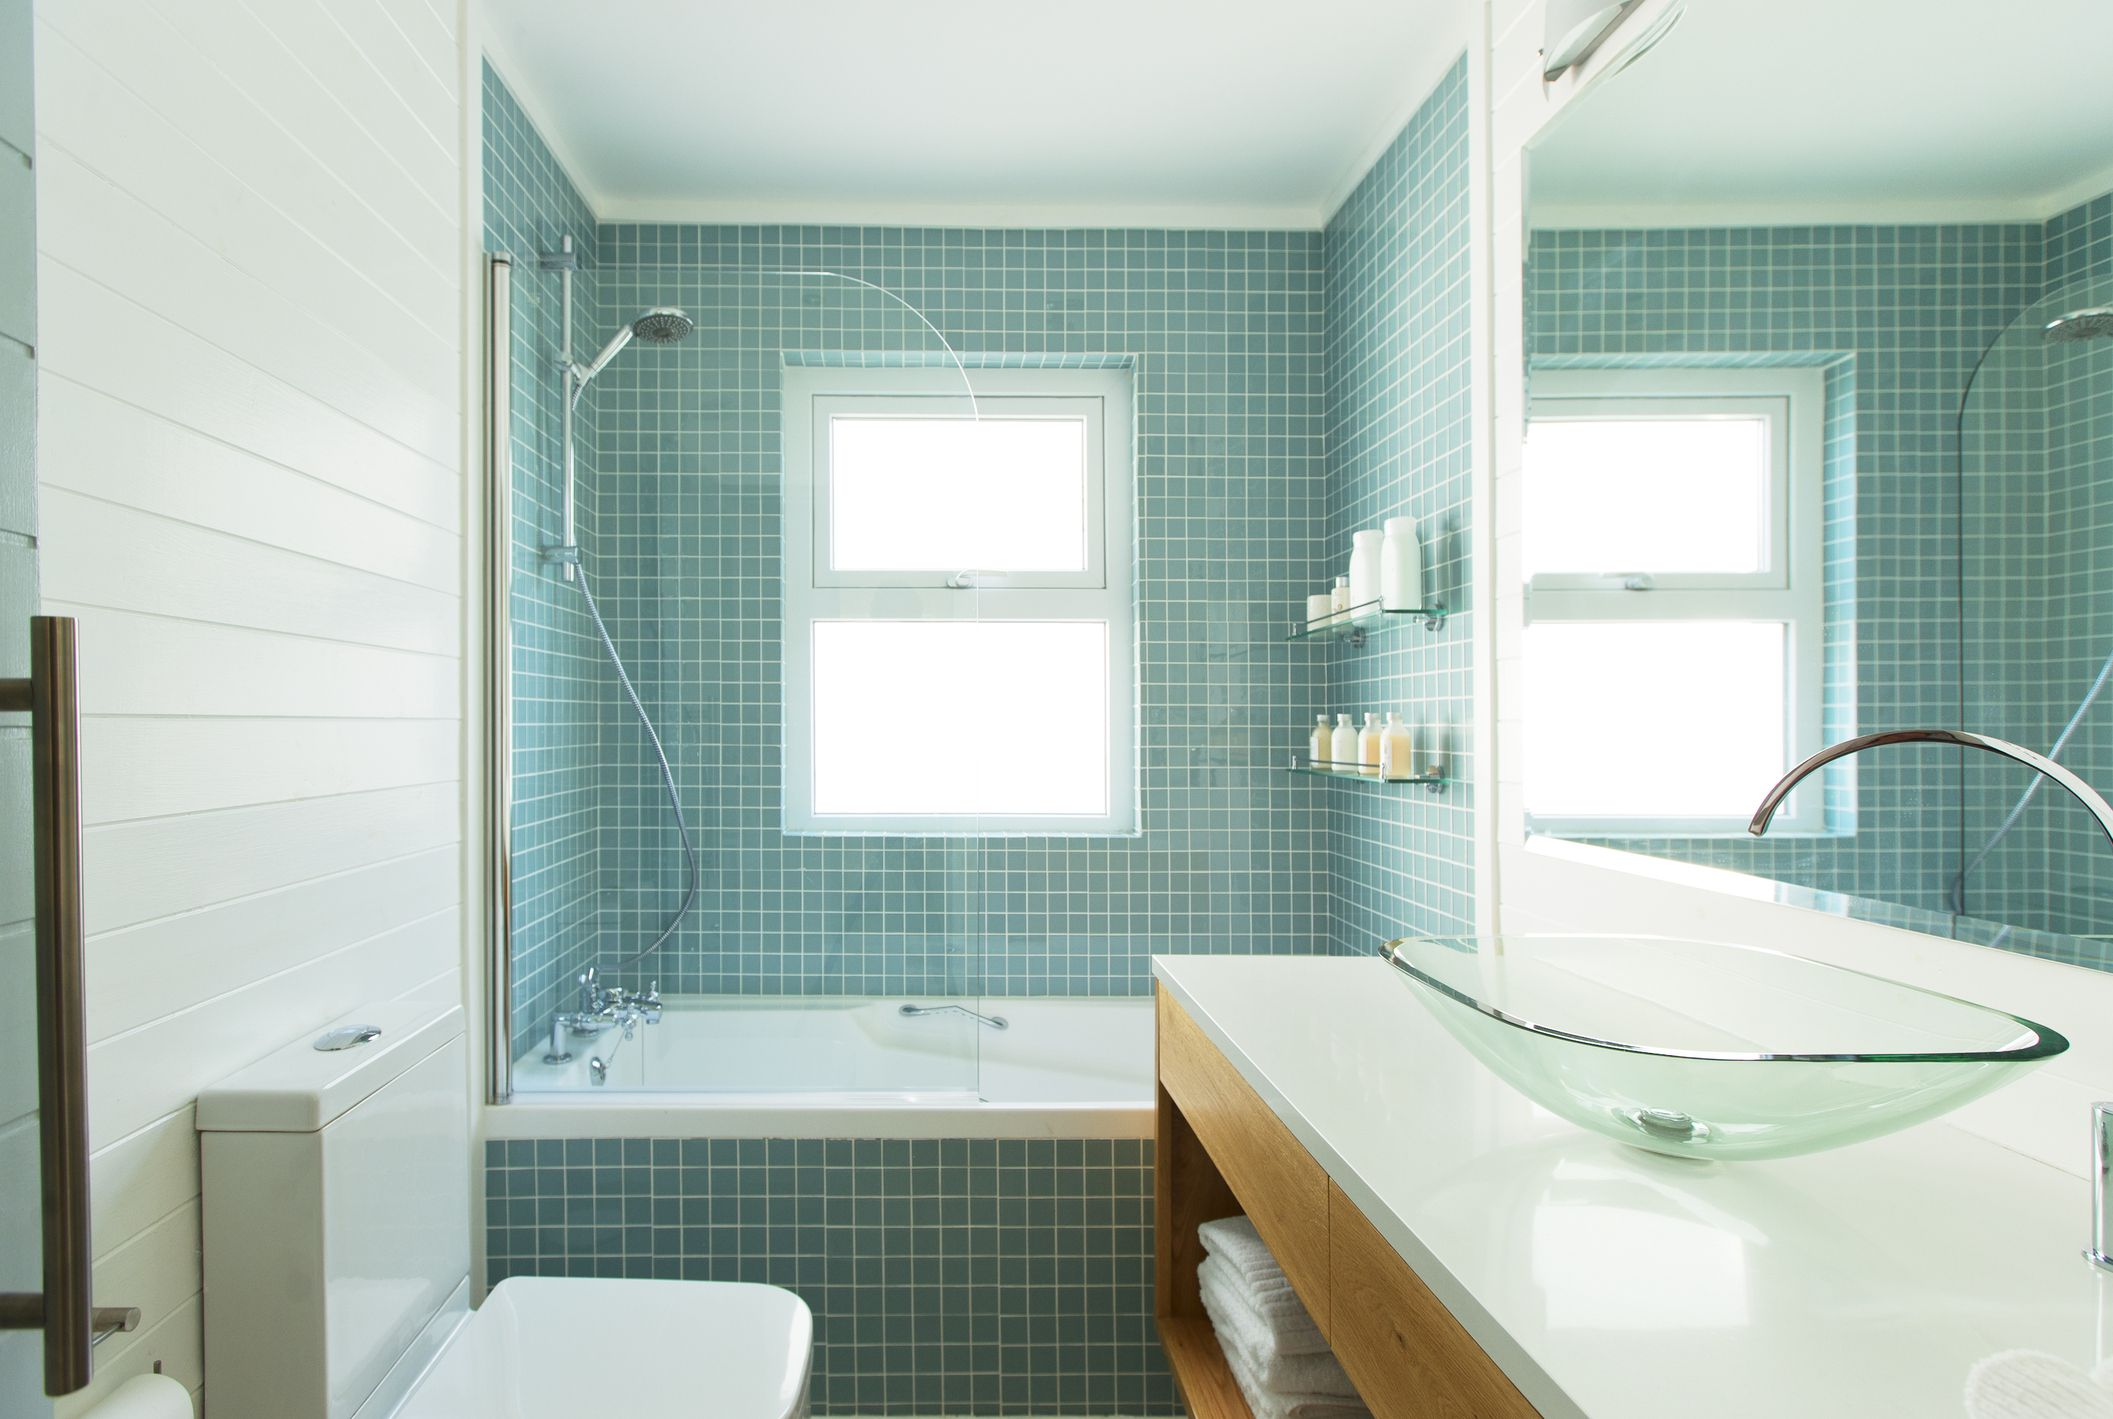 Tips for Properly Tiling a Bathroom